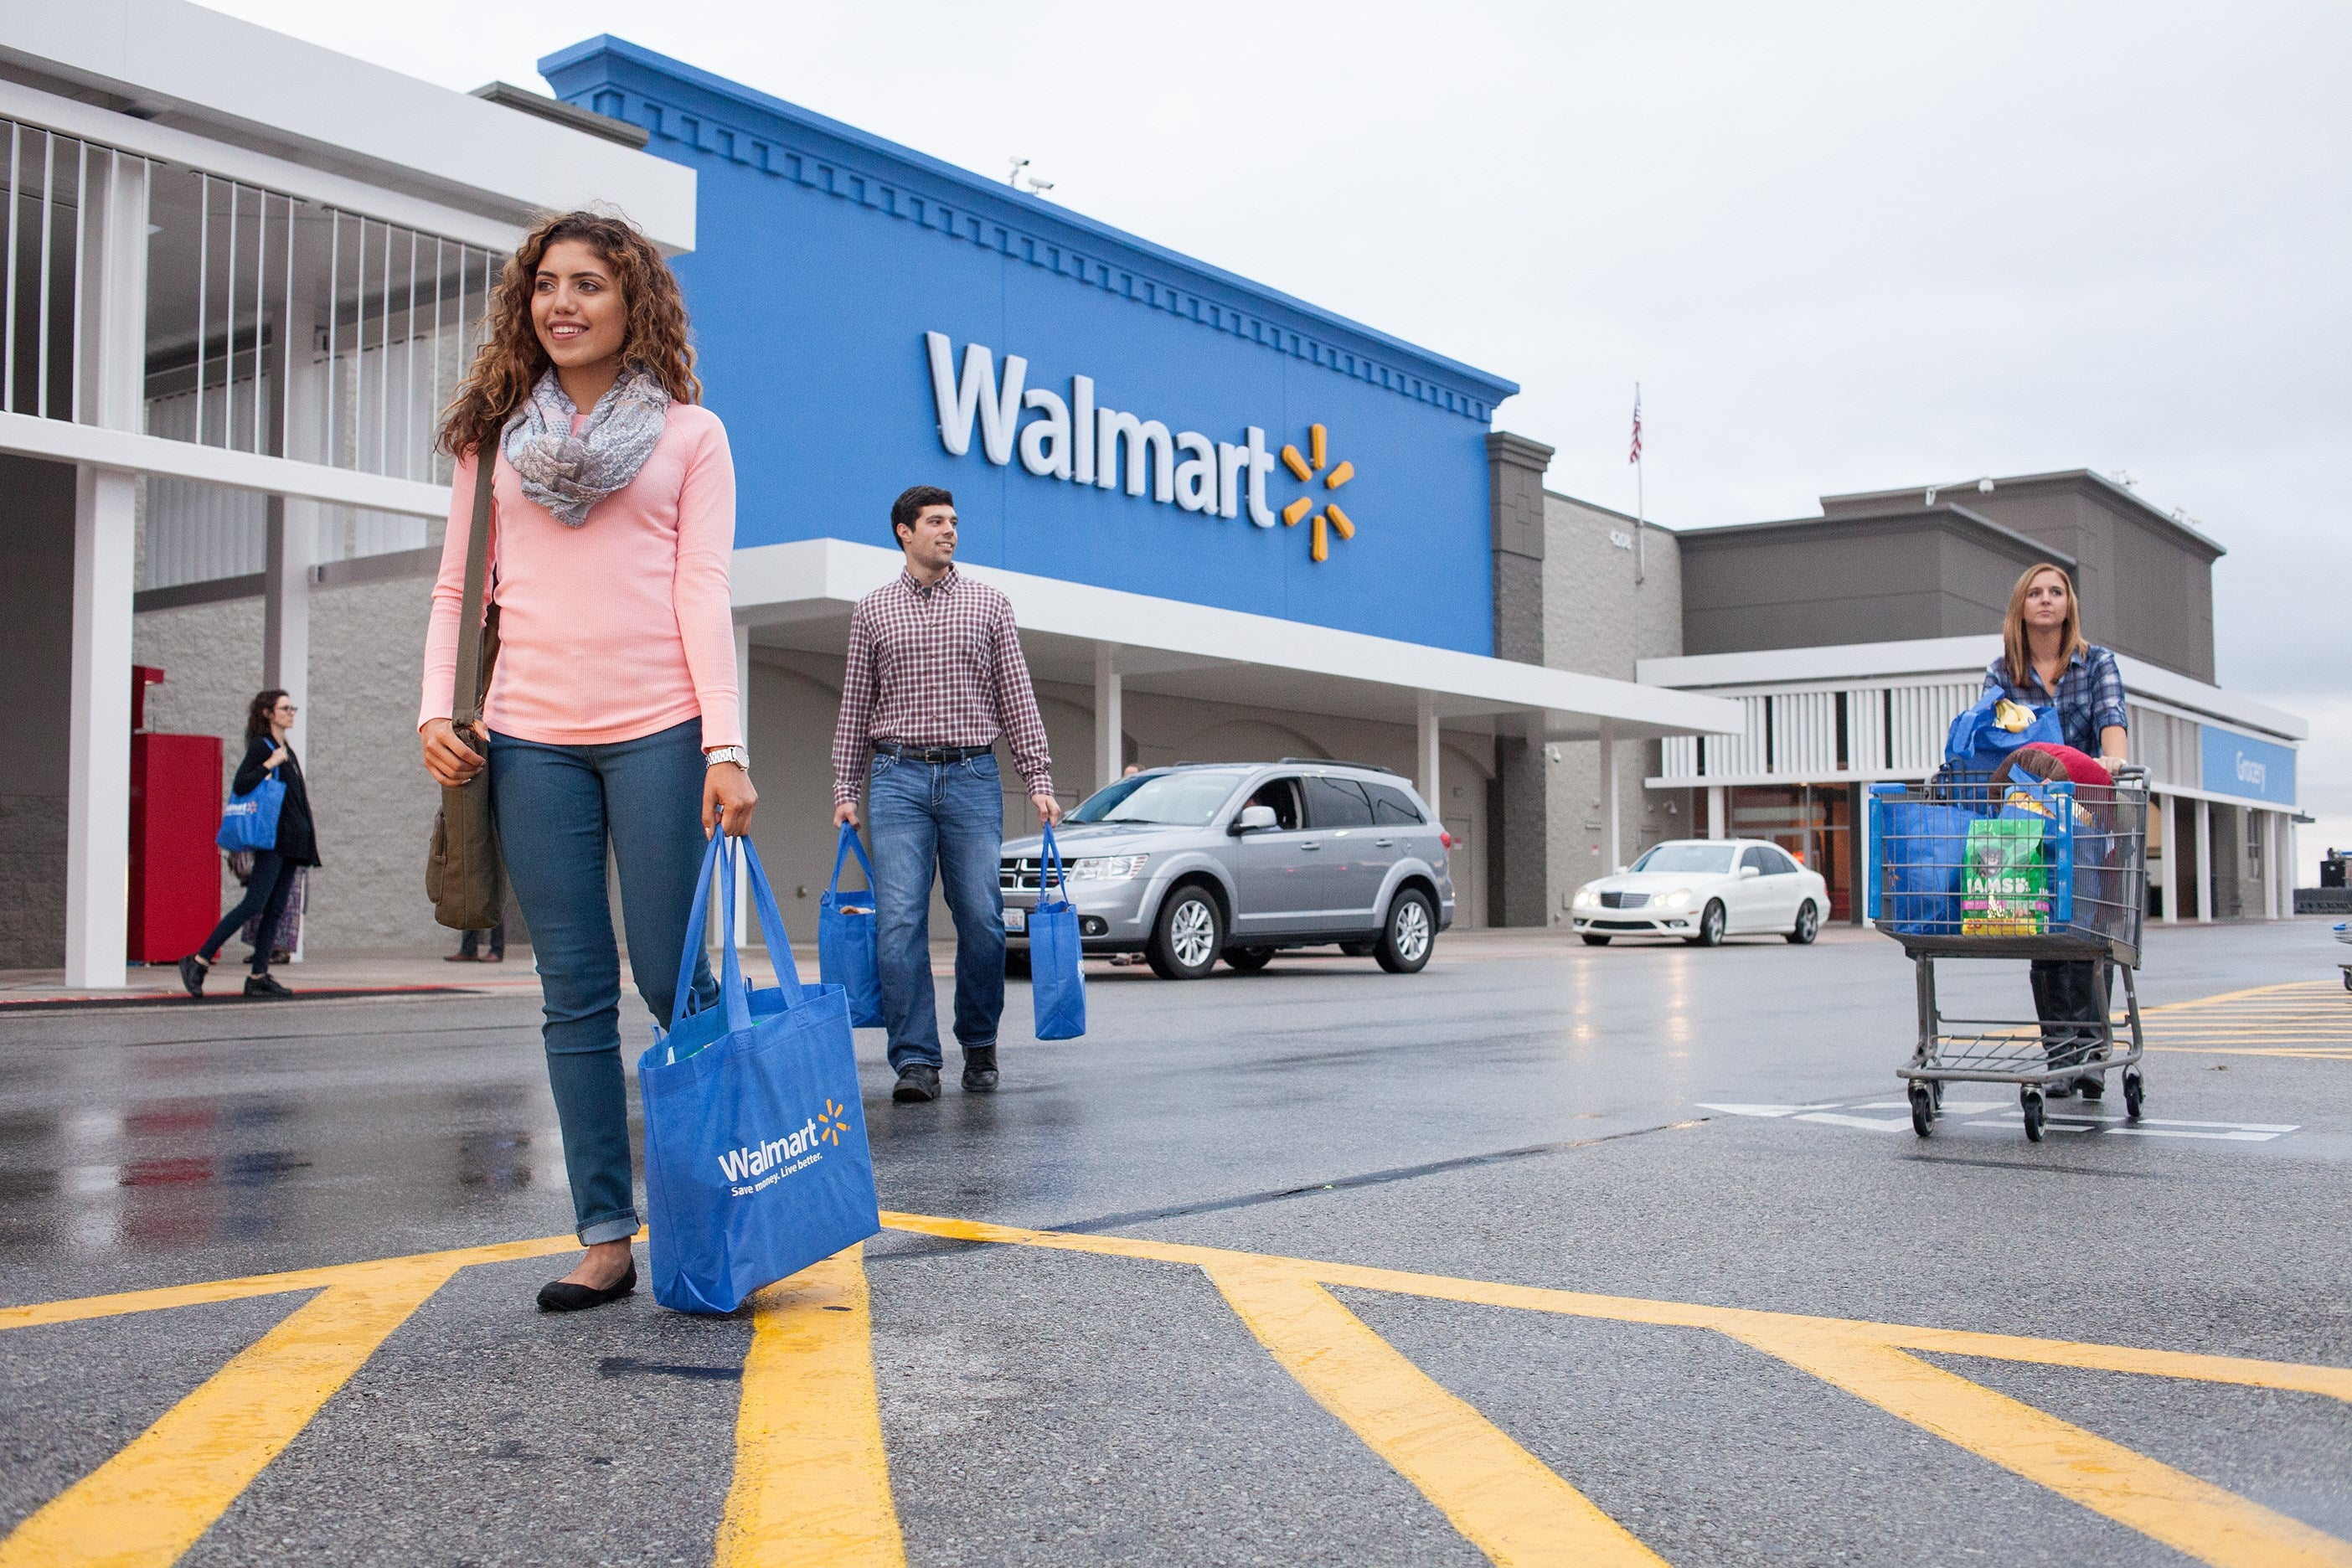 will wal-mart do a stock split in 2018